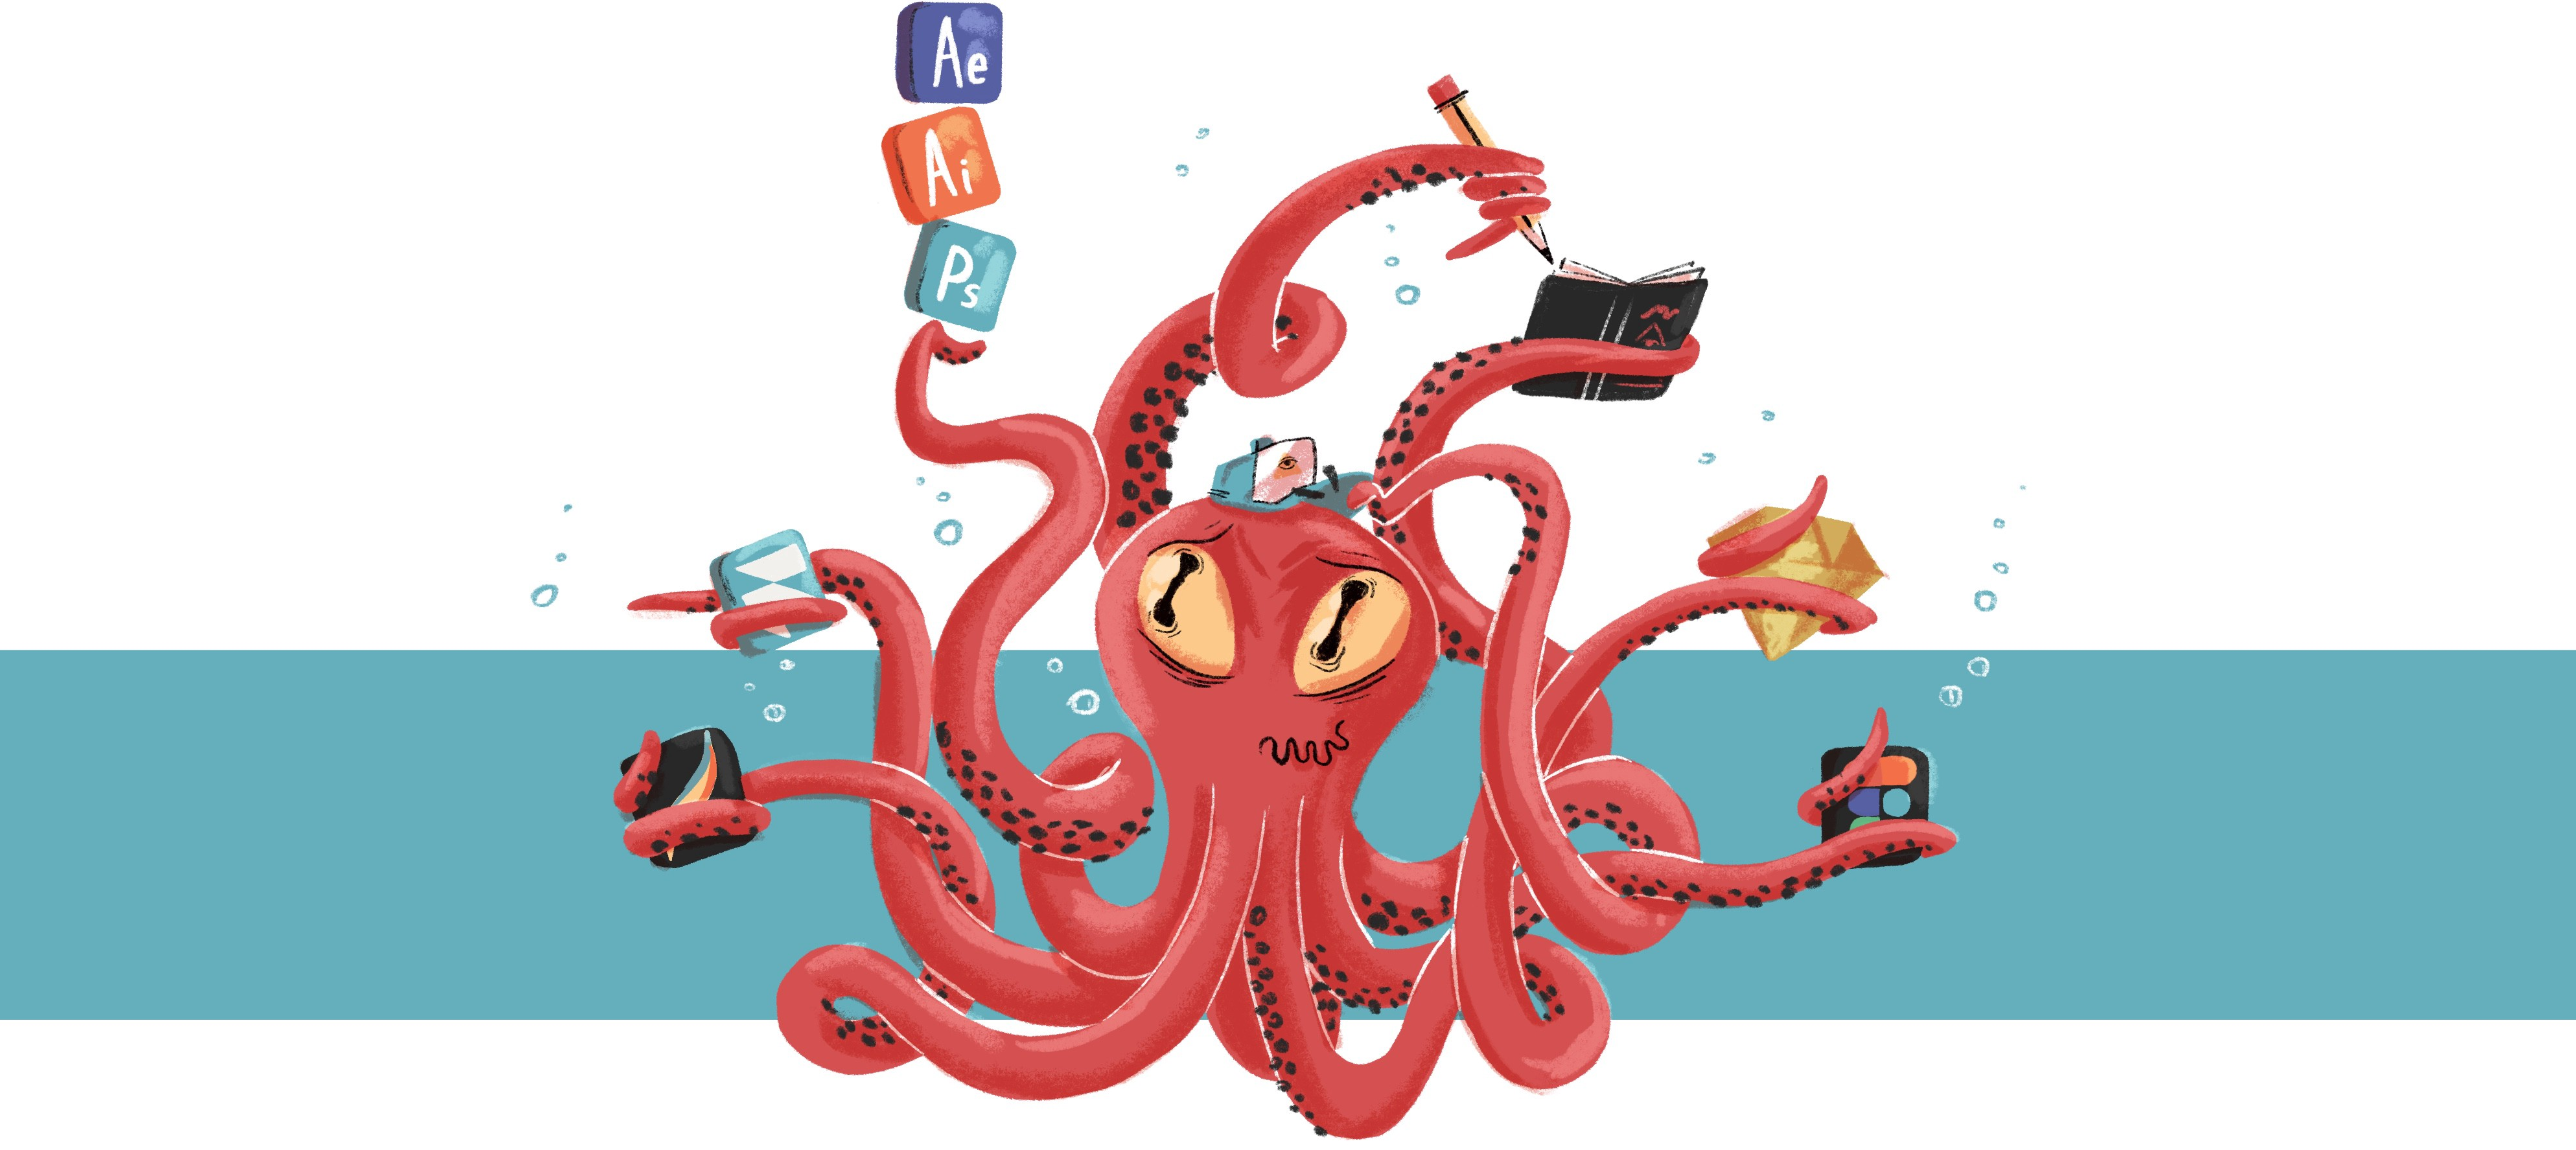 An octopus juggling several icons of design tools and drawing on a sketchbook with its tentacles.